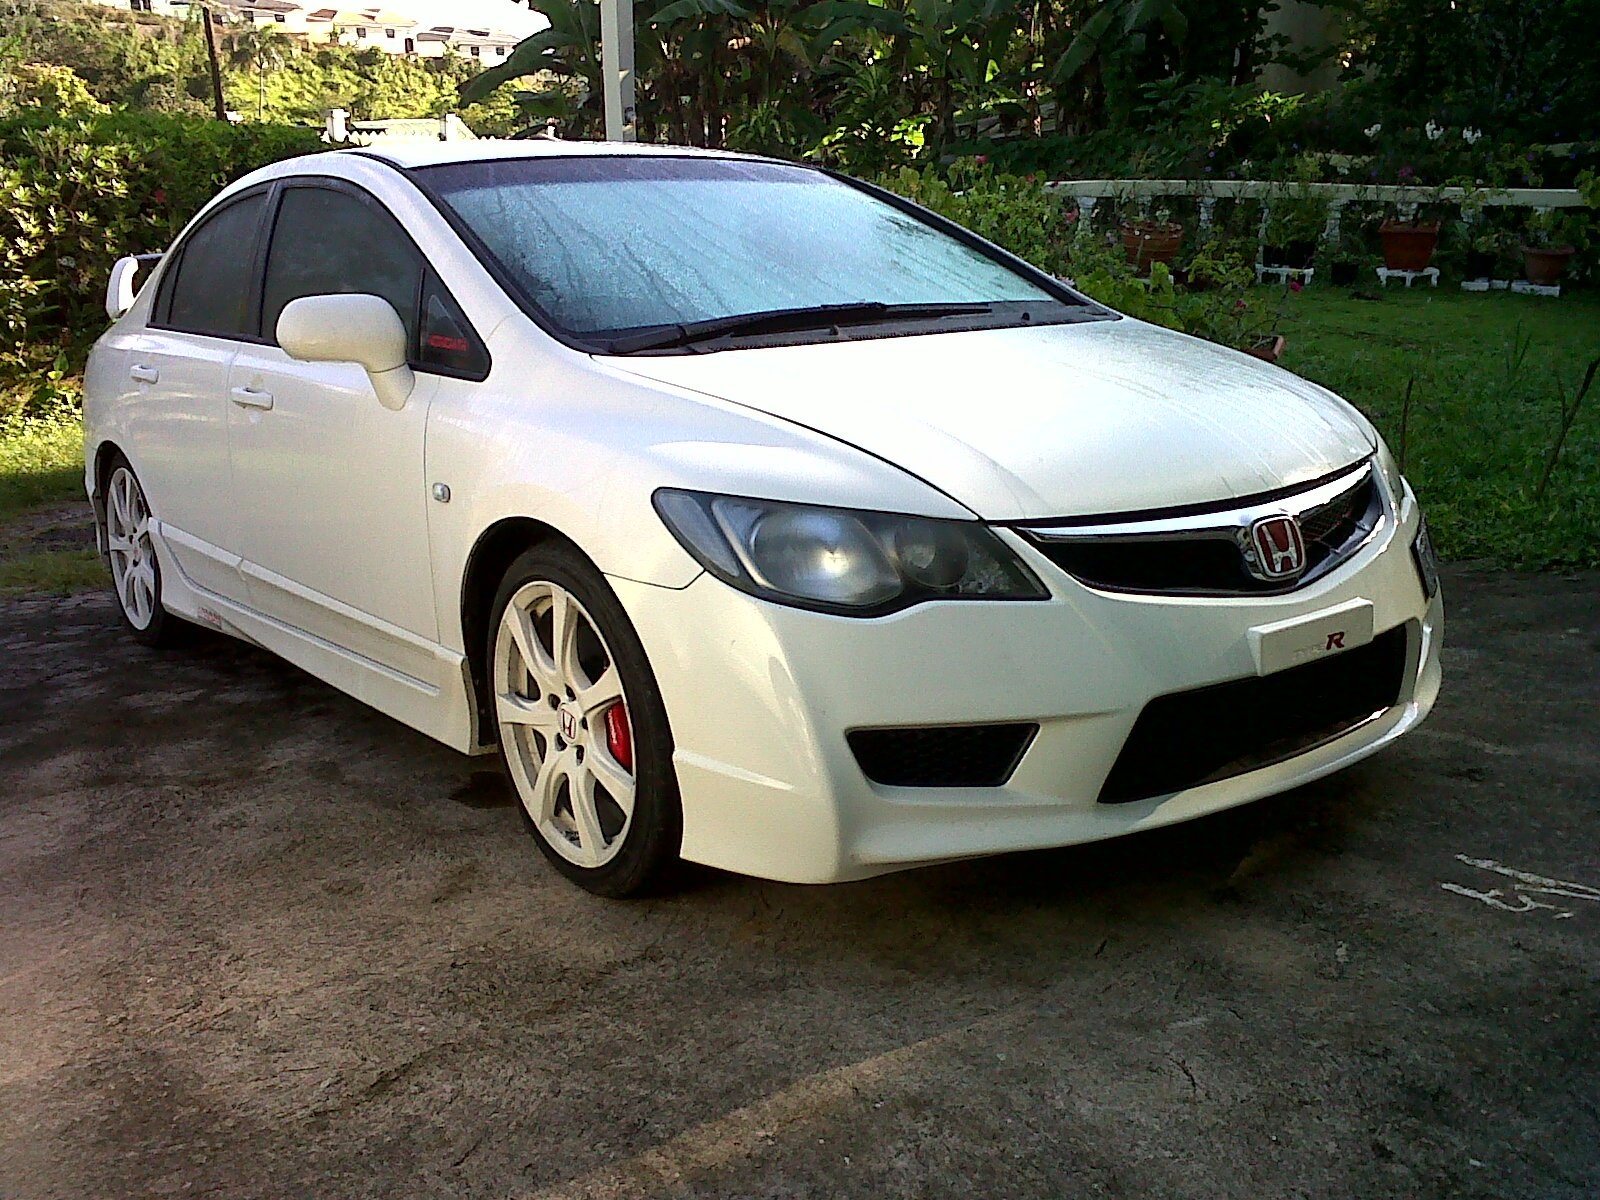 West Indes Chat-civic_6.jpg